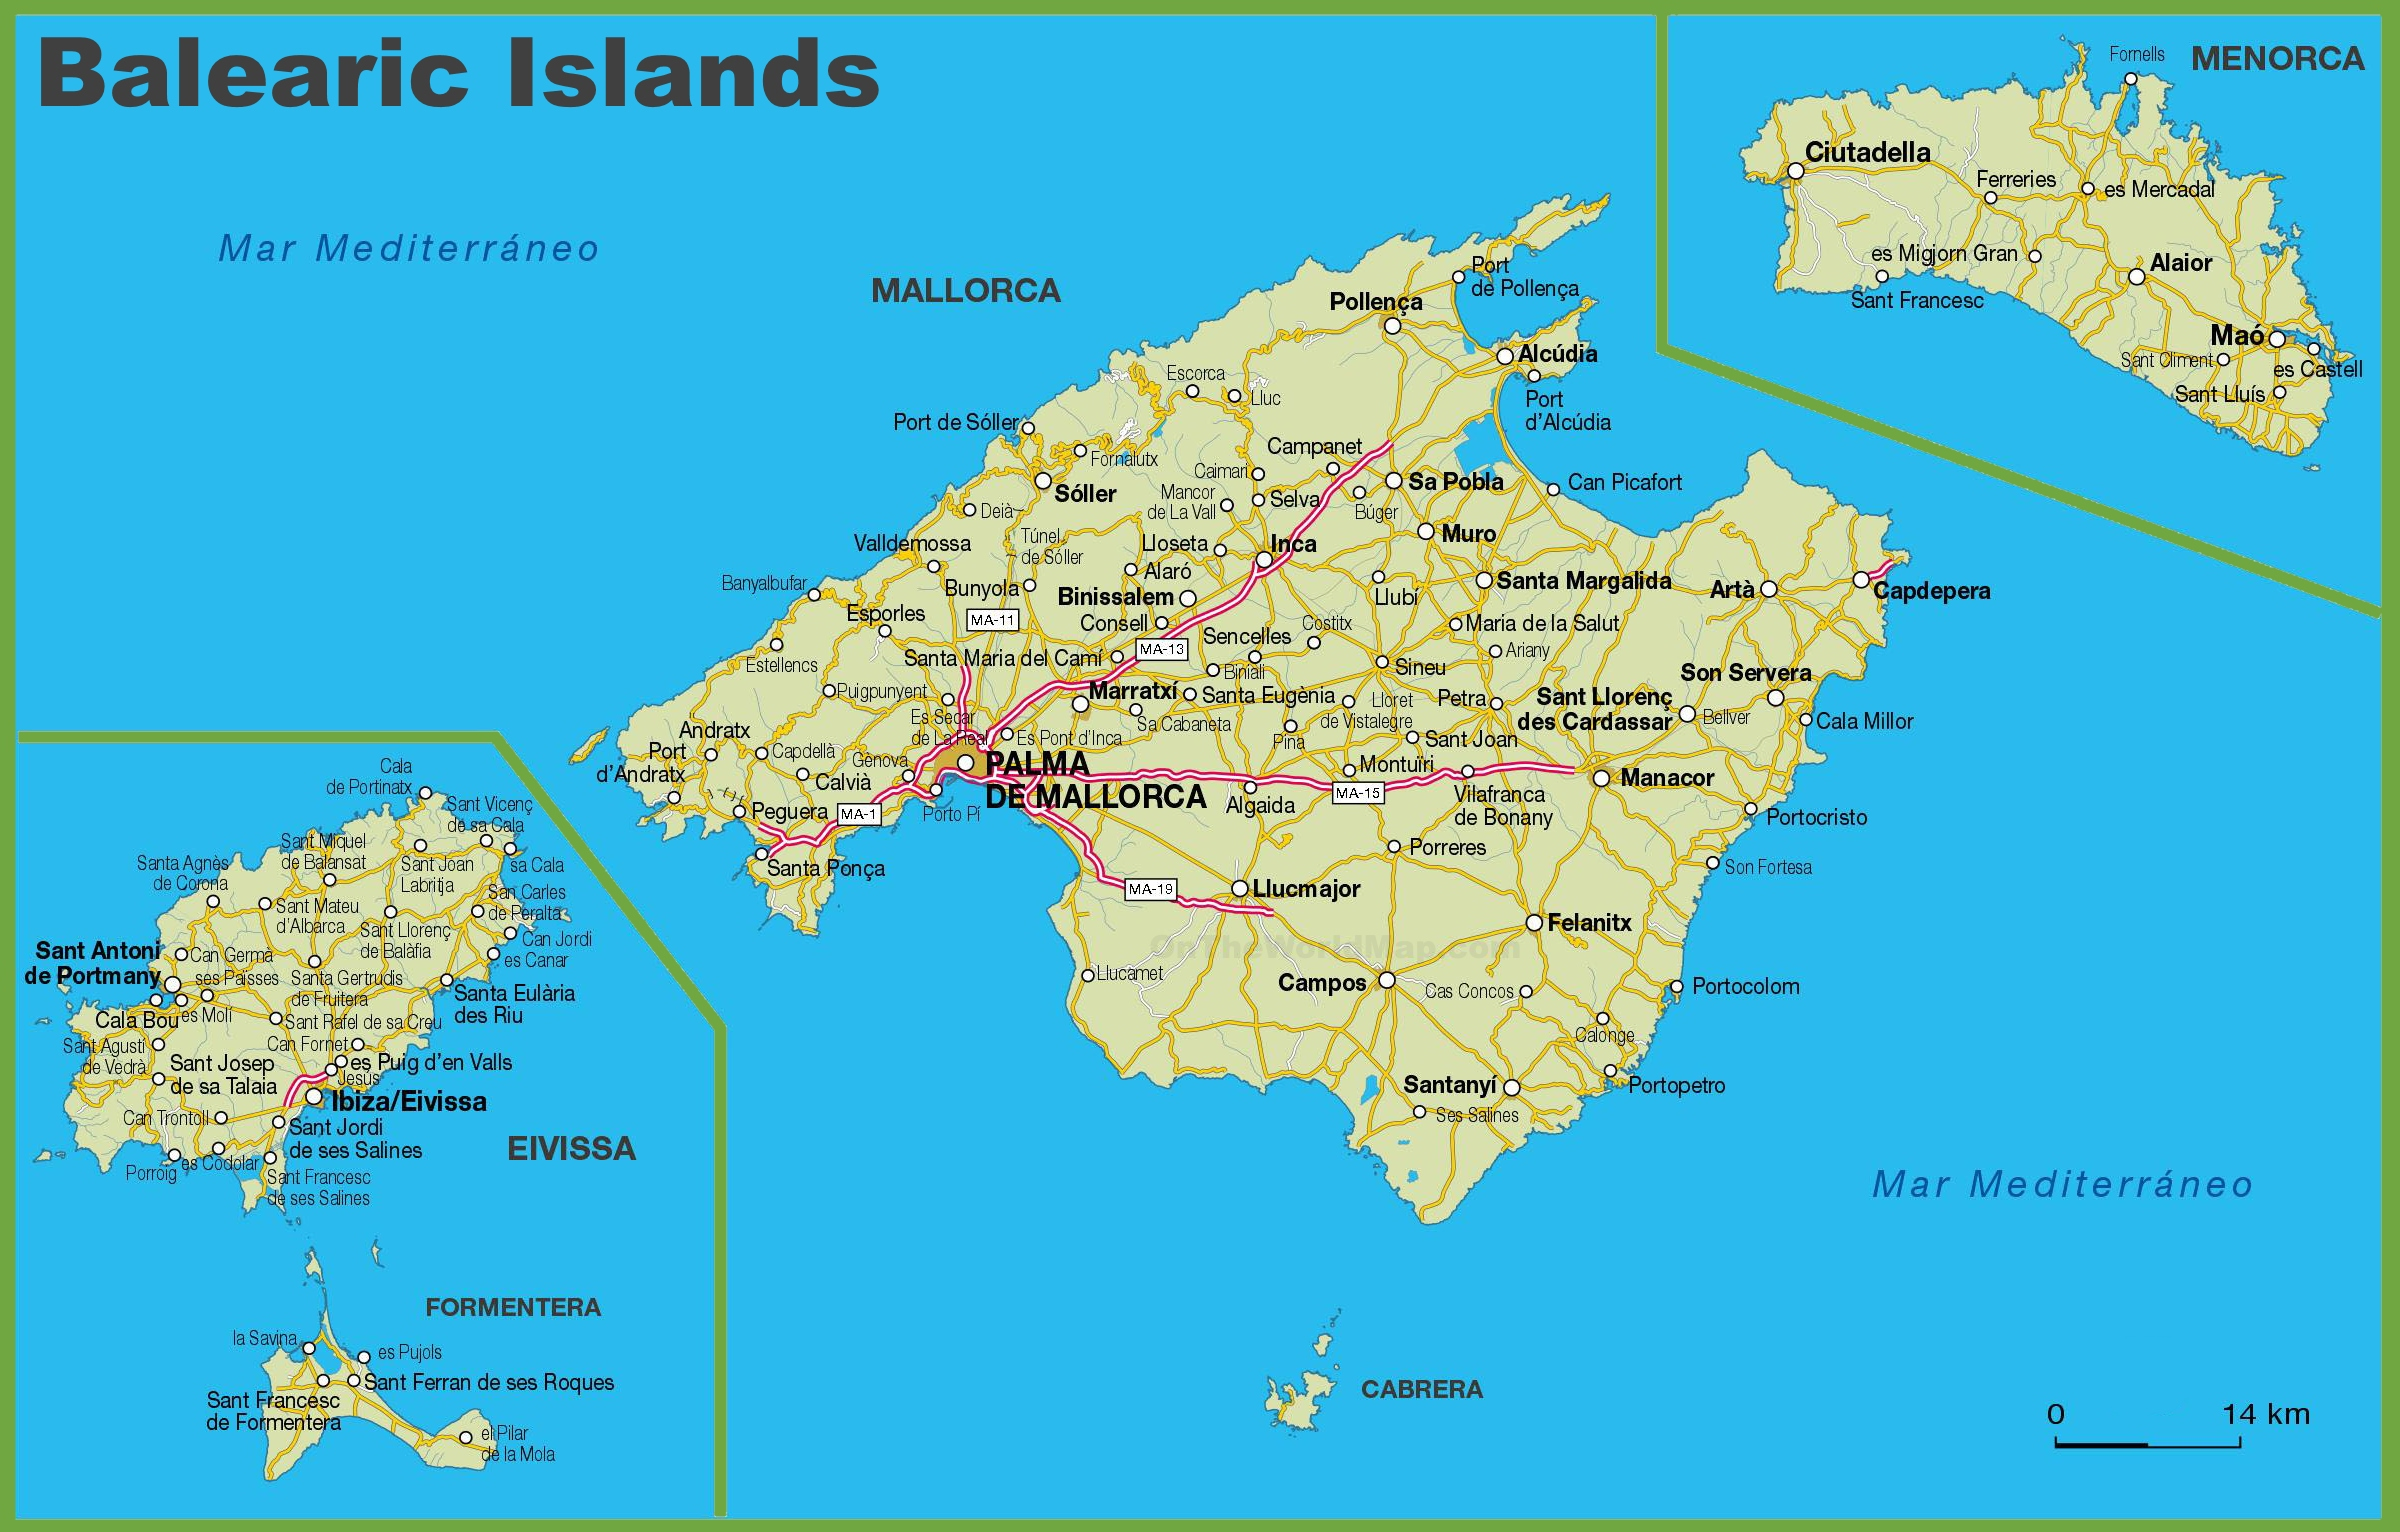 Balearic Islands road map